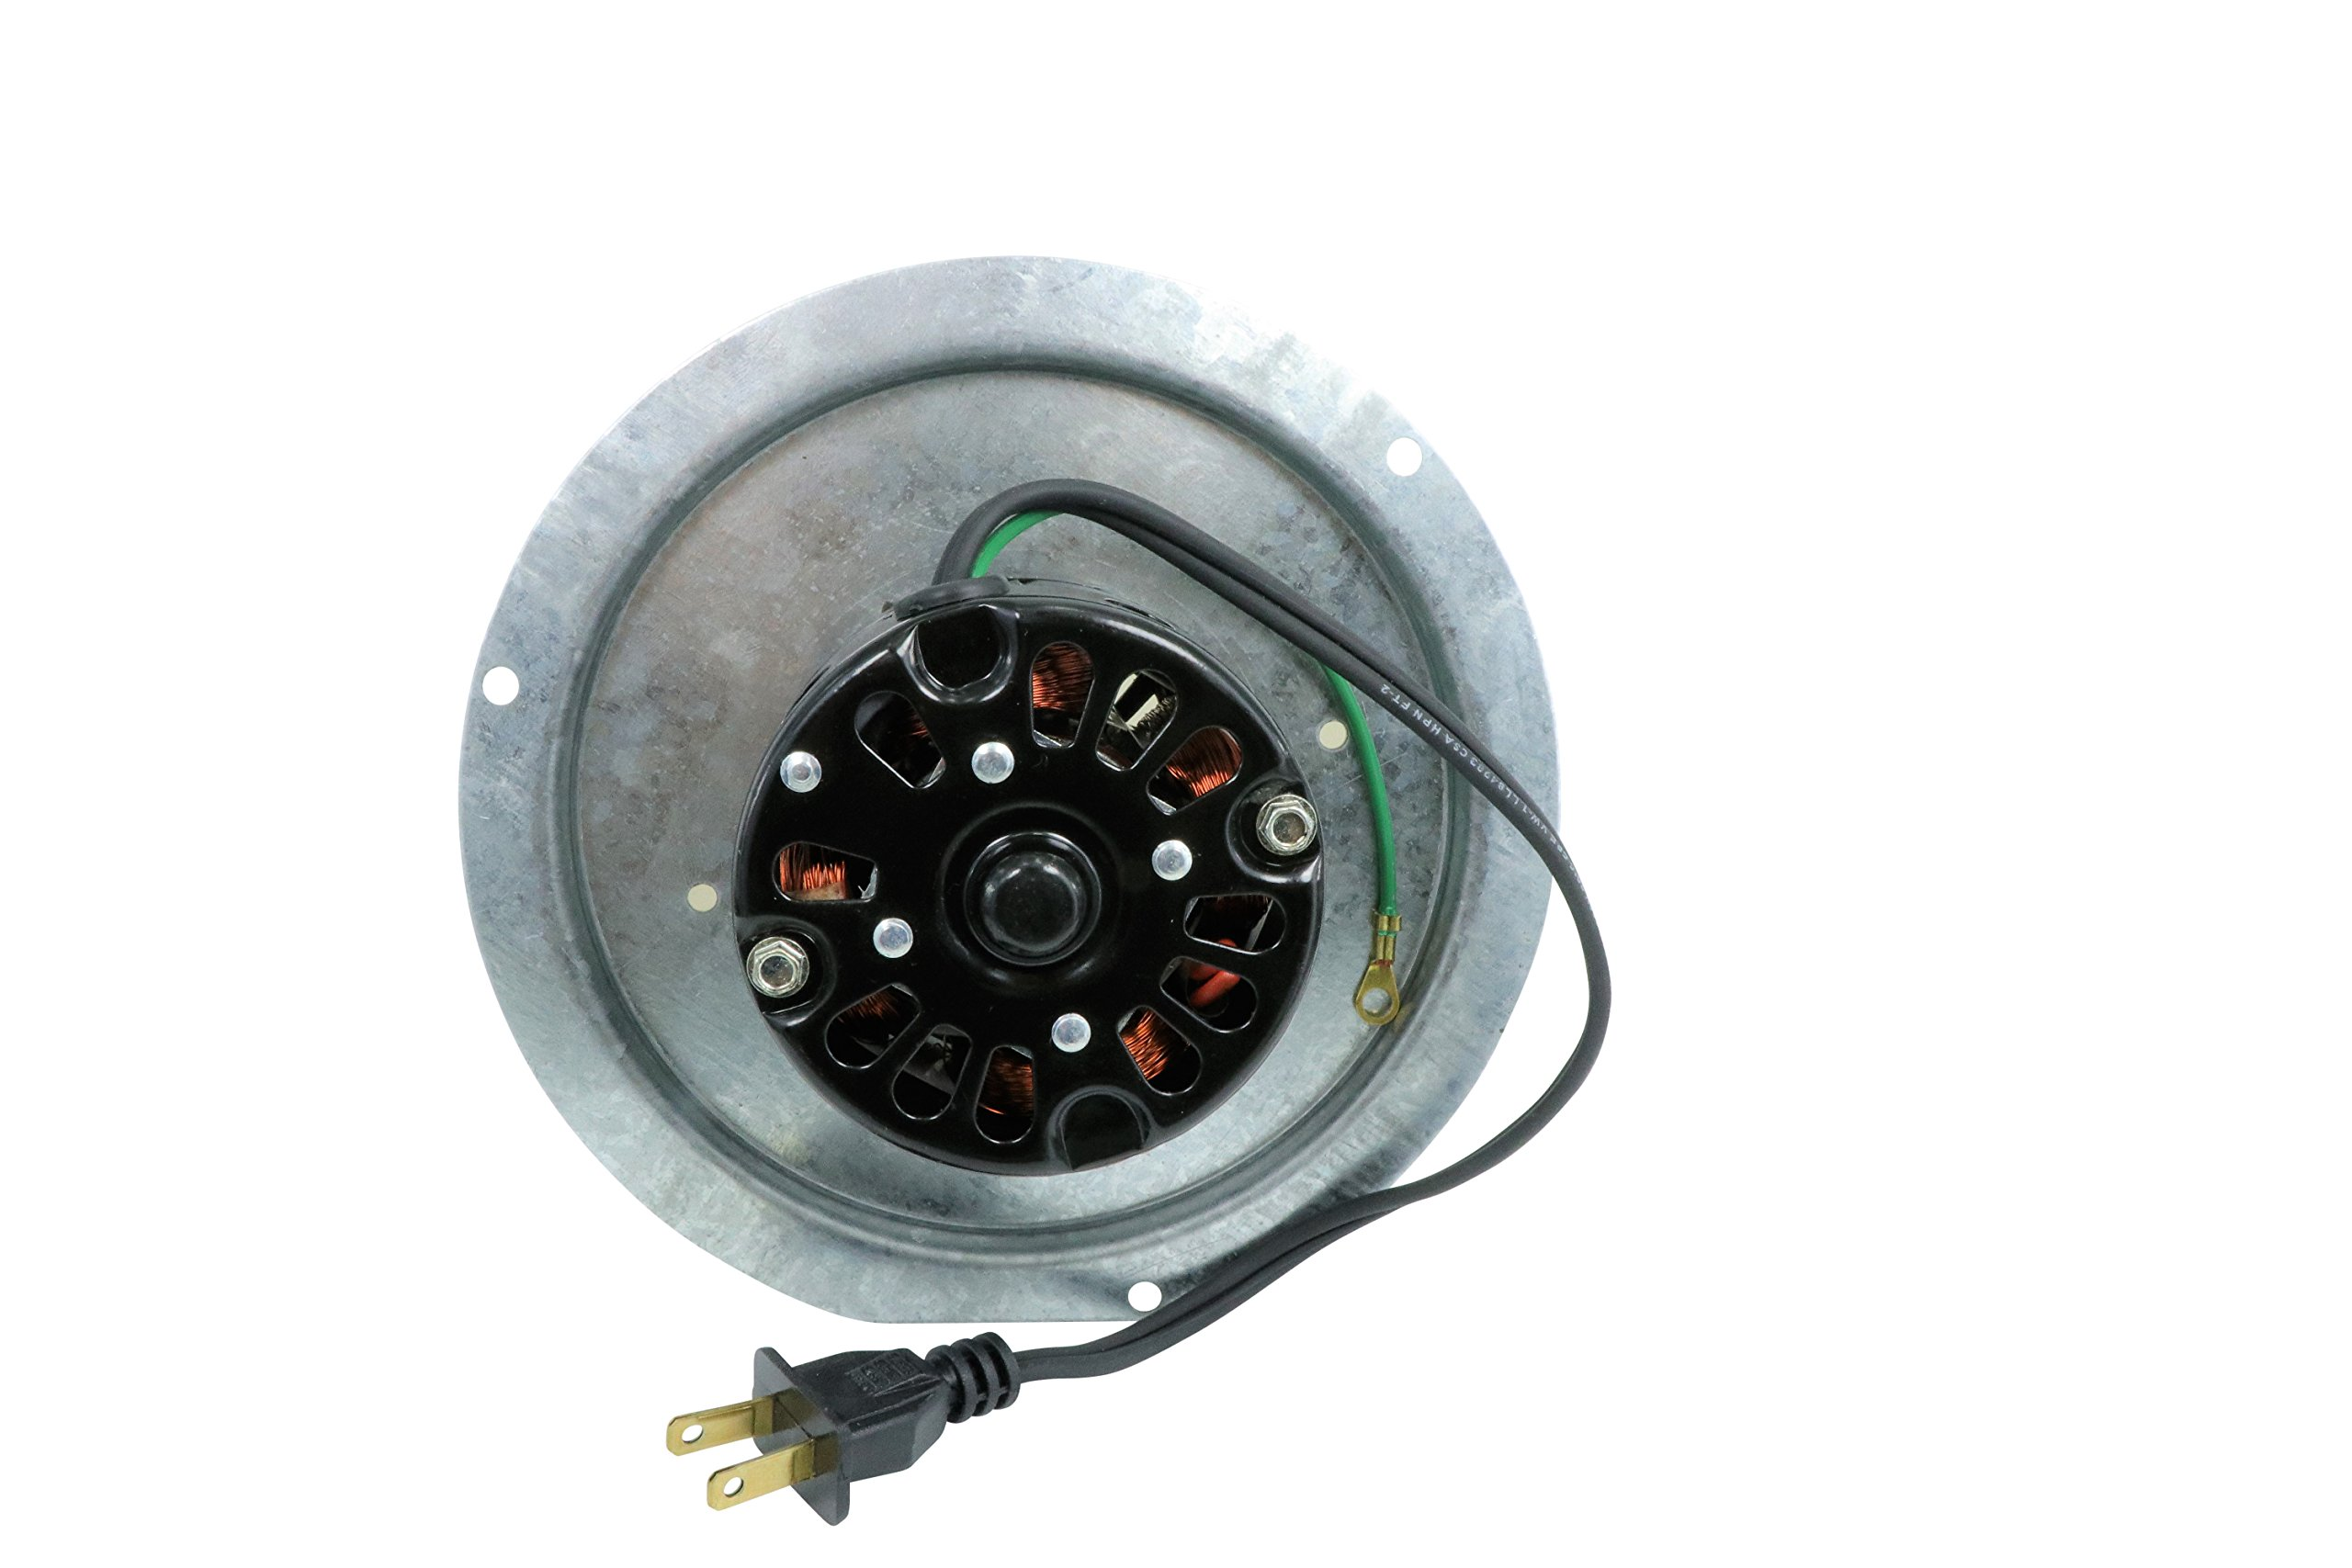 Endurance Pro 0696B000 Motor Assembly for QT100 and QT110 Series Fans Replacement for Nutone by Endurance Pro (Image #3)